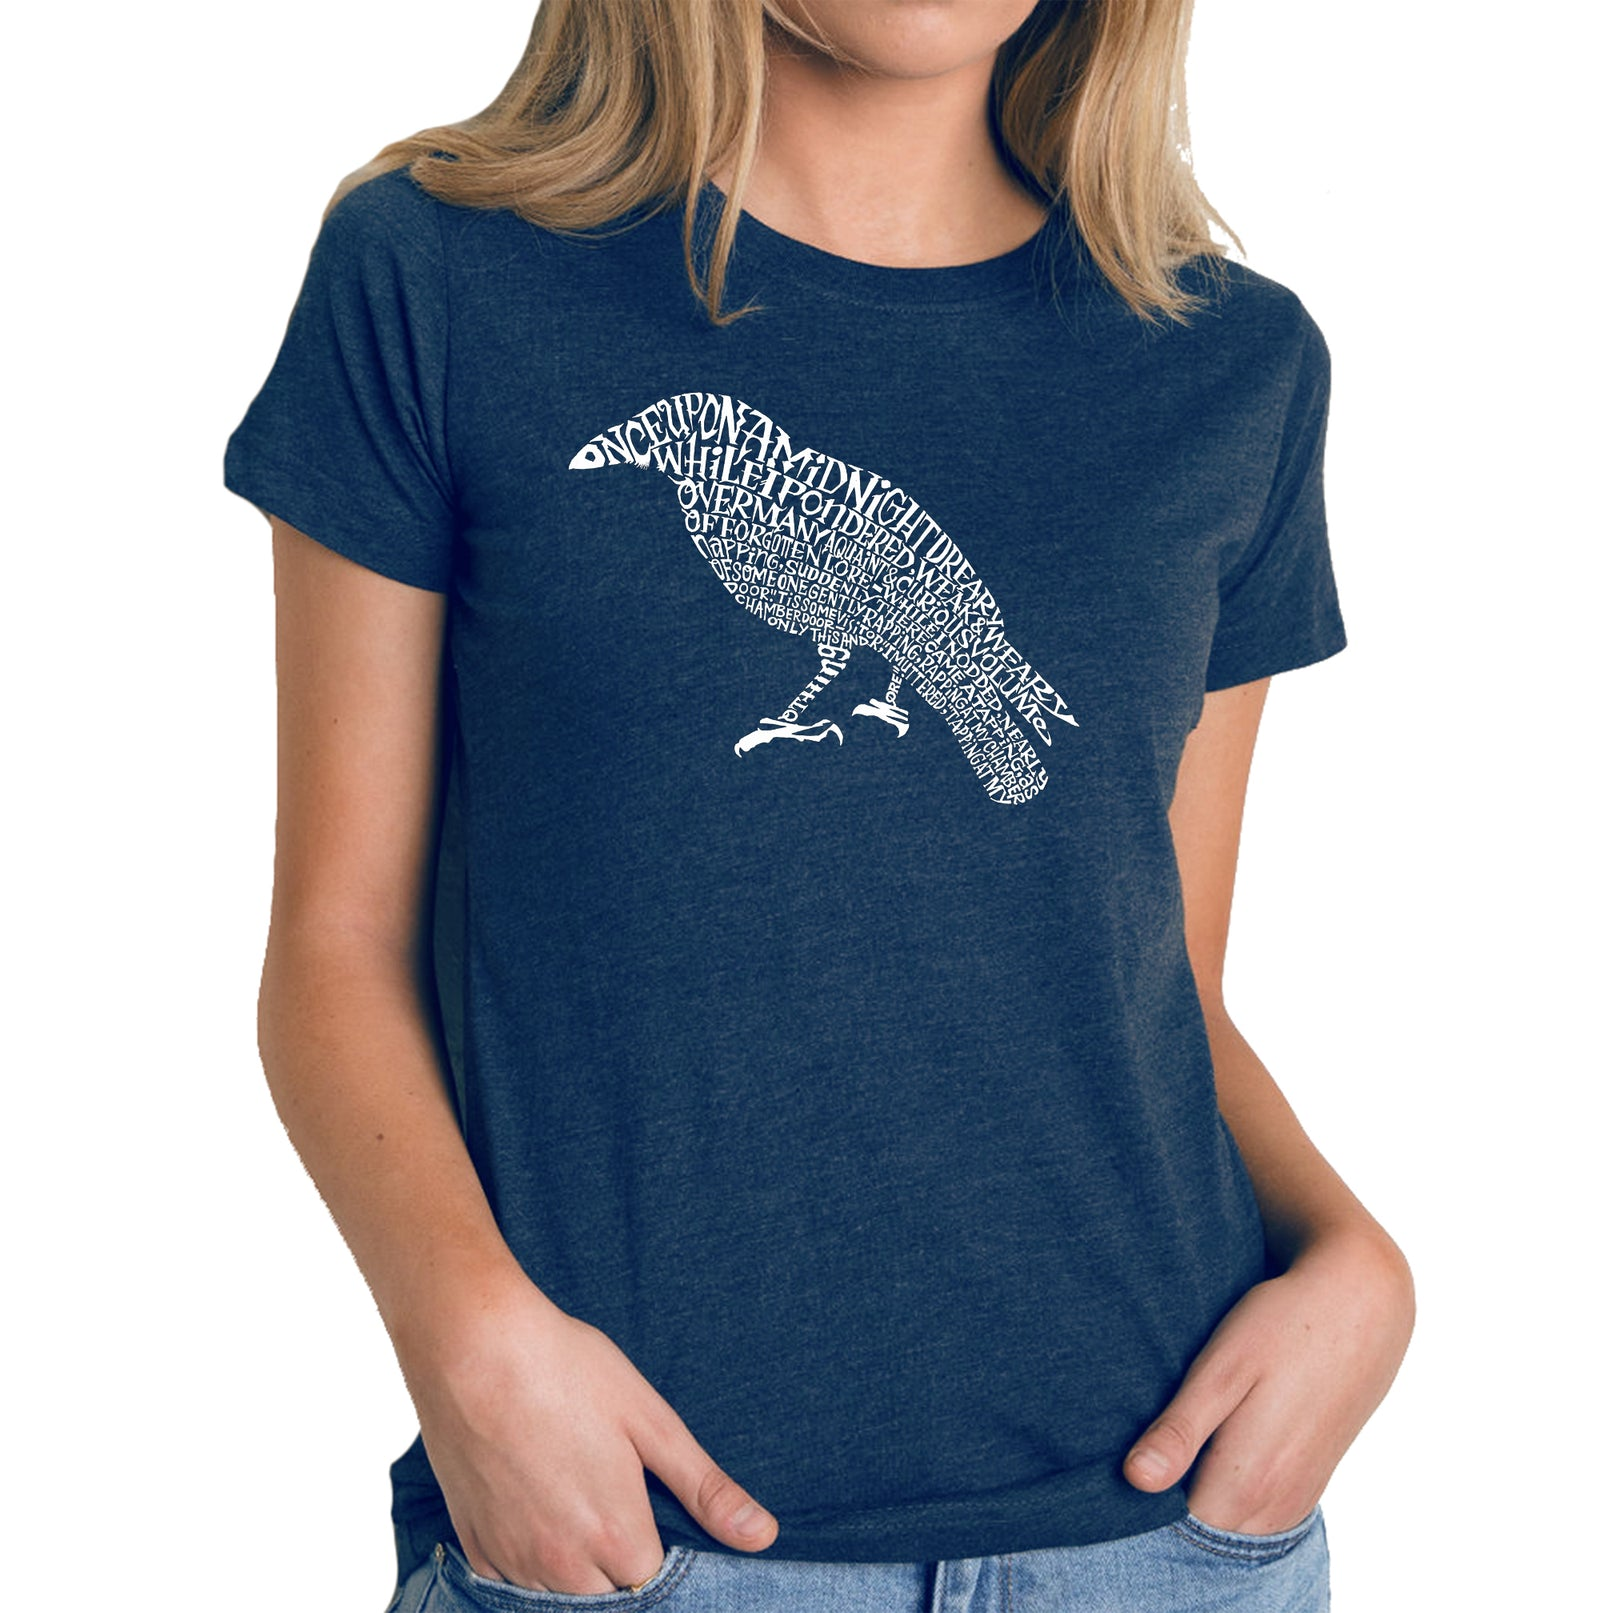 Women's Premium Blend Word Art T-shirt - Edgar Allan Poe's The Raven